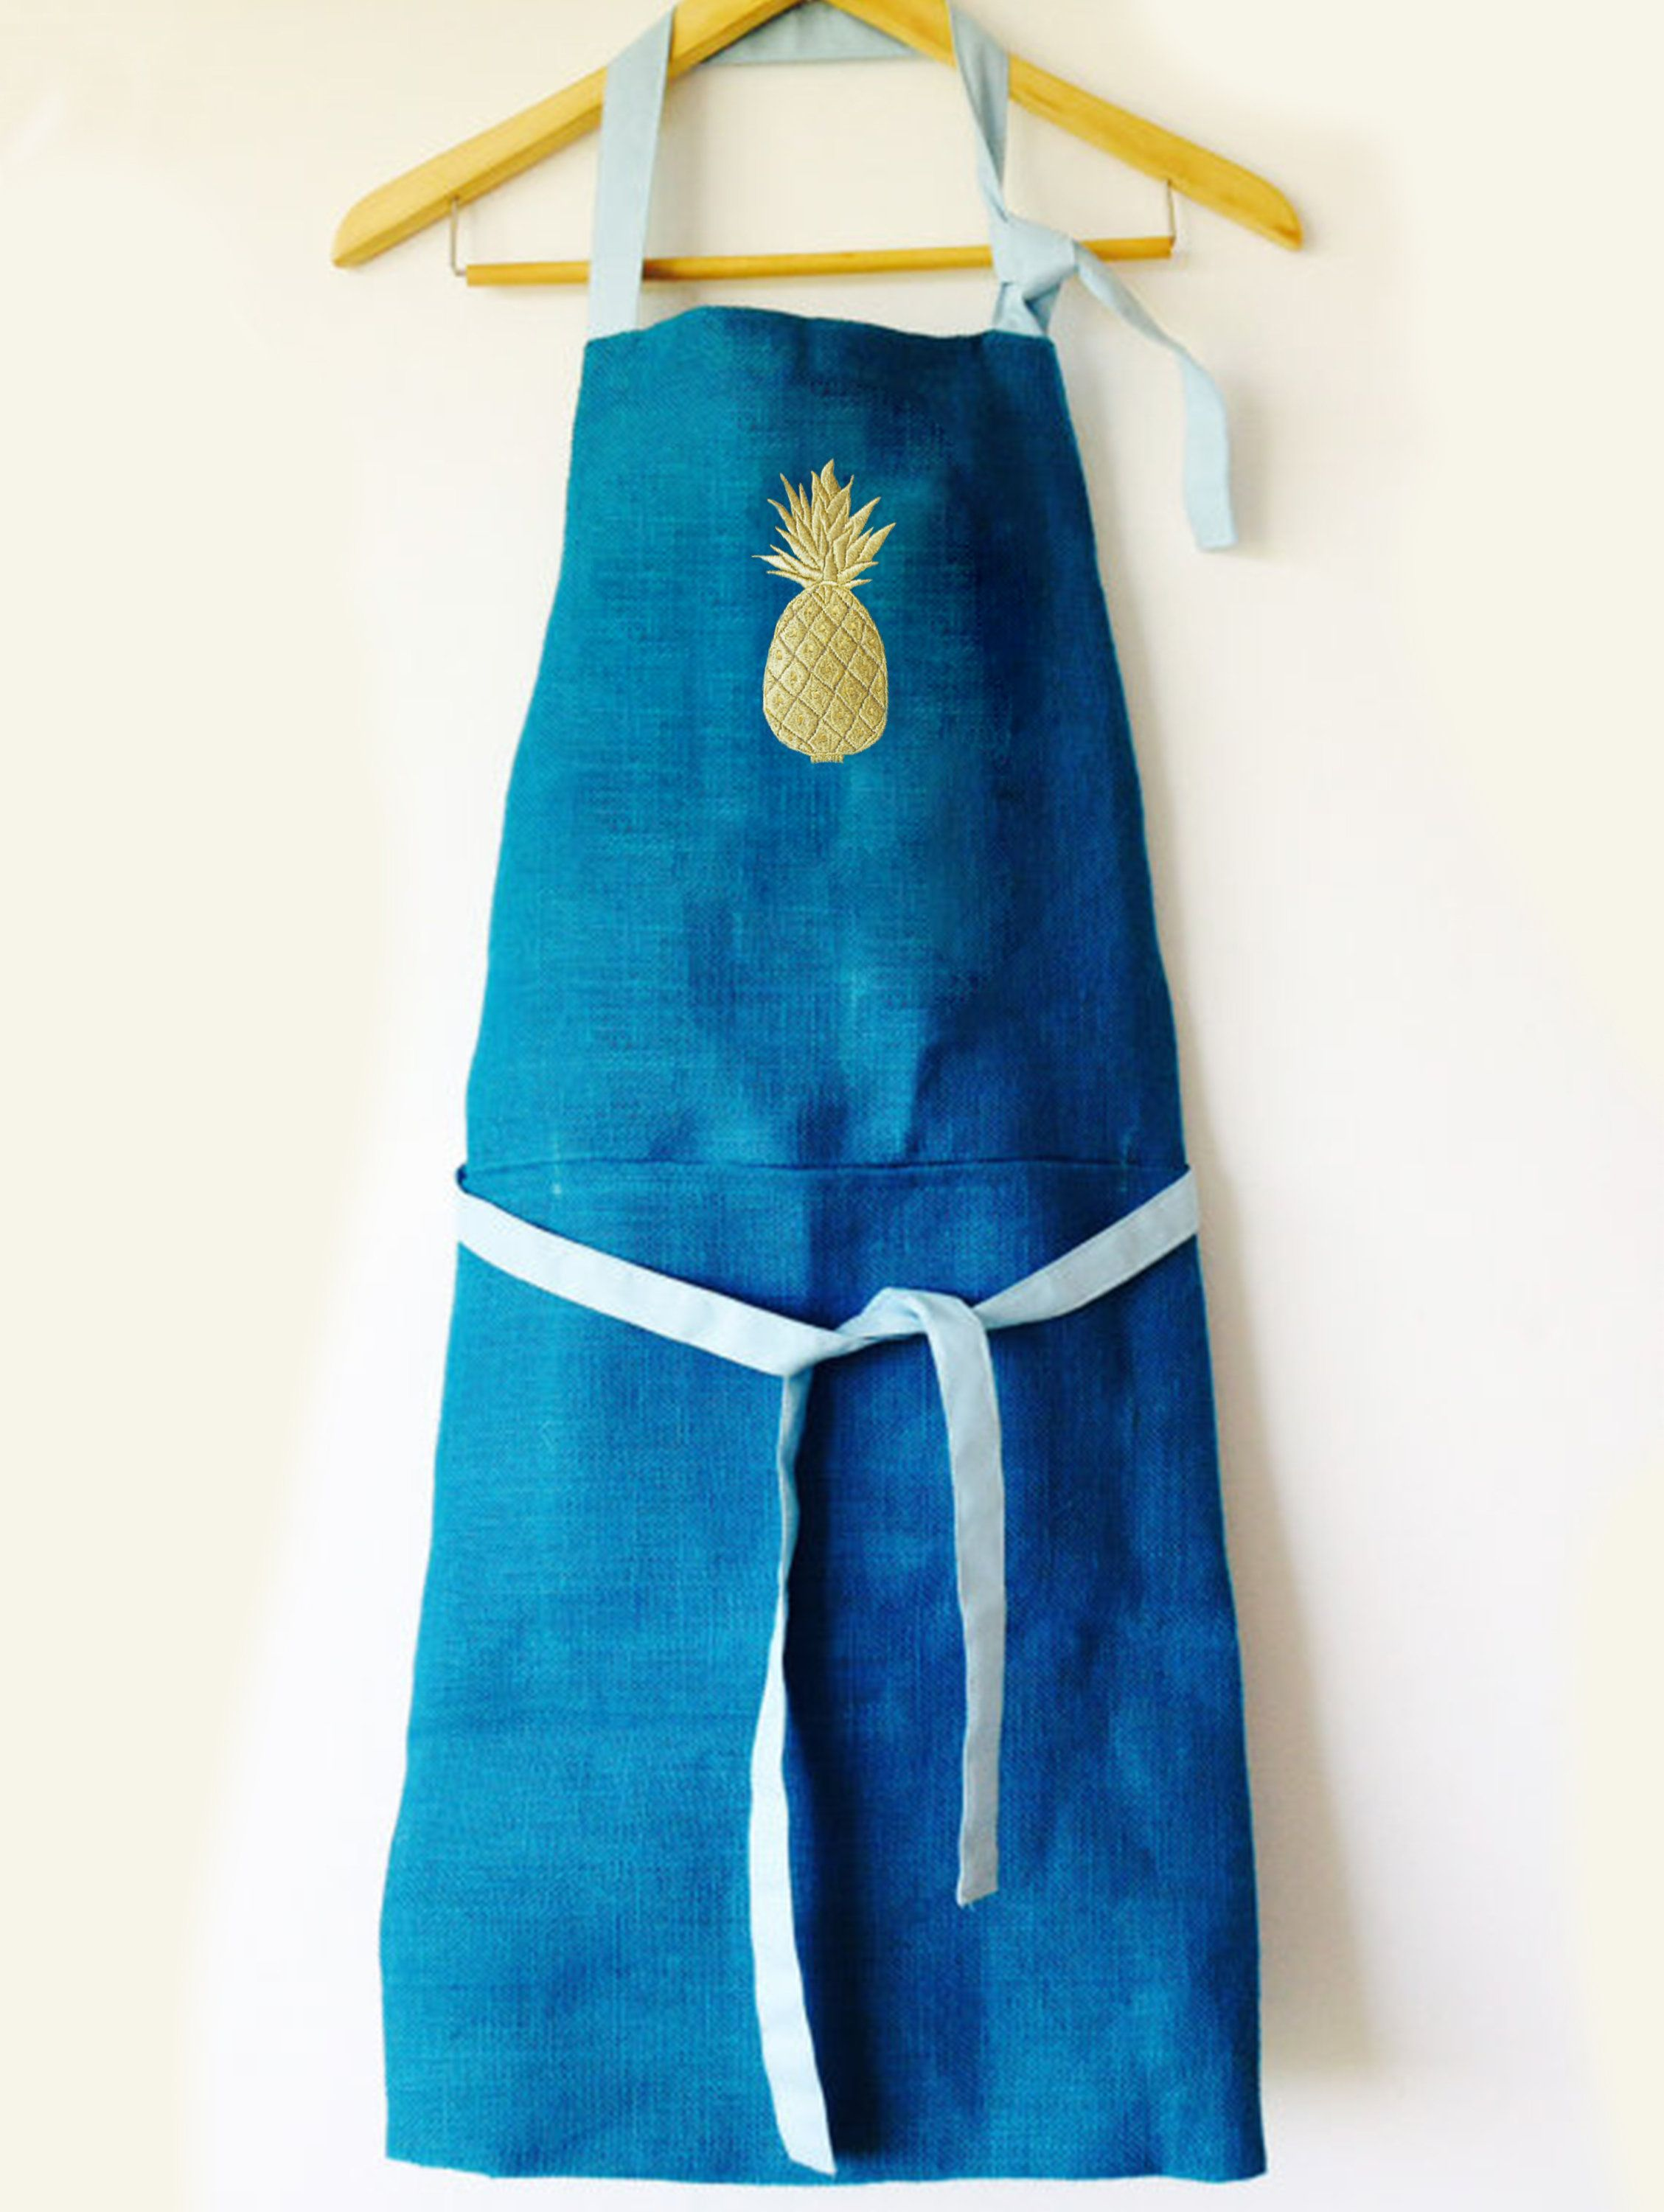 Pineapple Burlap Apron, Blue Aprons, Kitchen Apron, Embroidery Jute ...